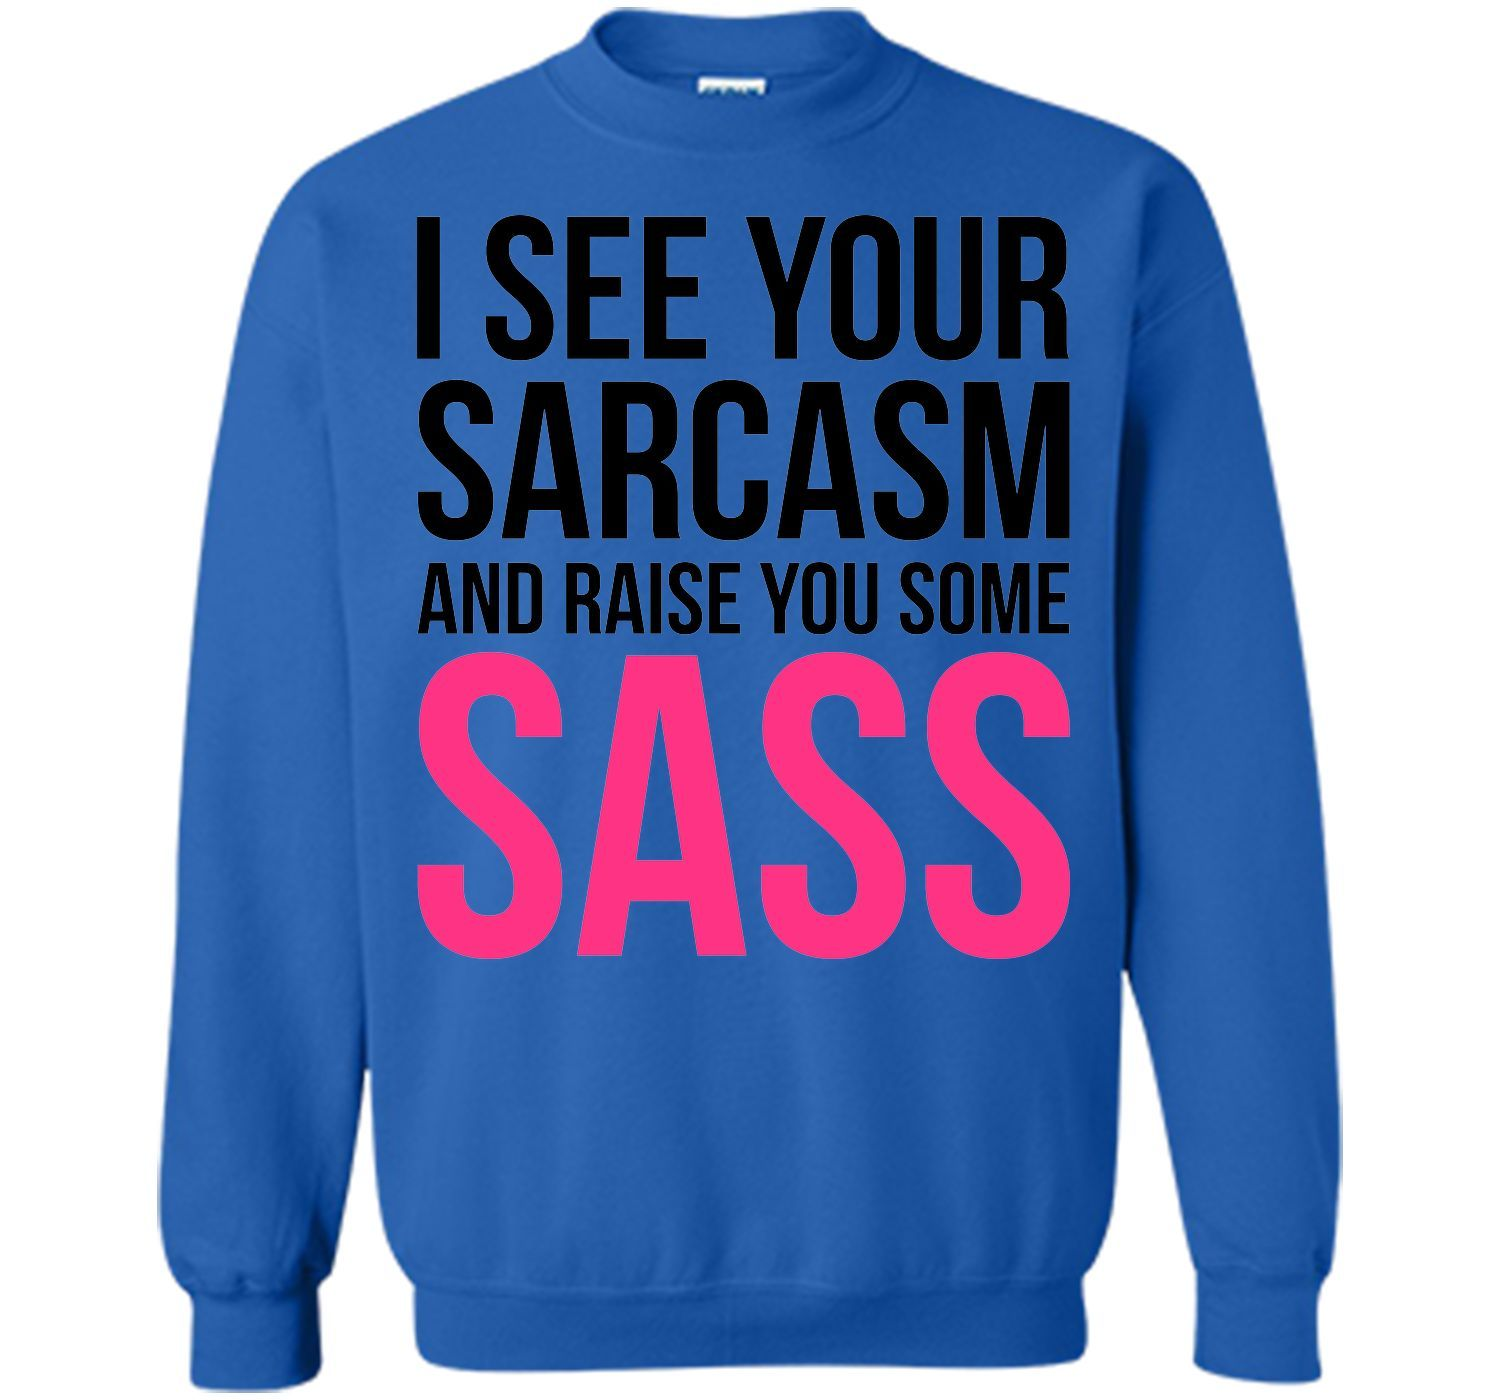 Raise You Sass Funny Quote T-Shirt